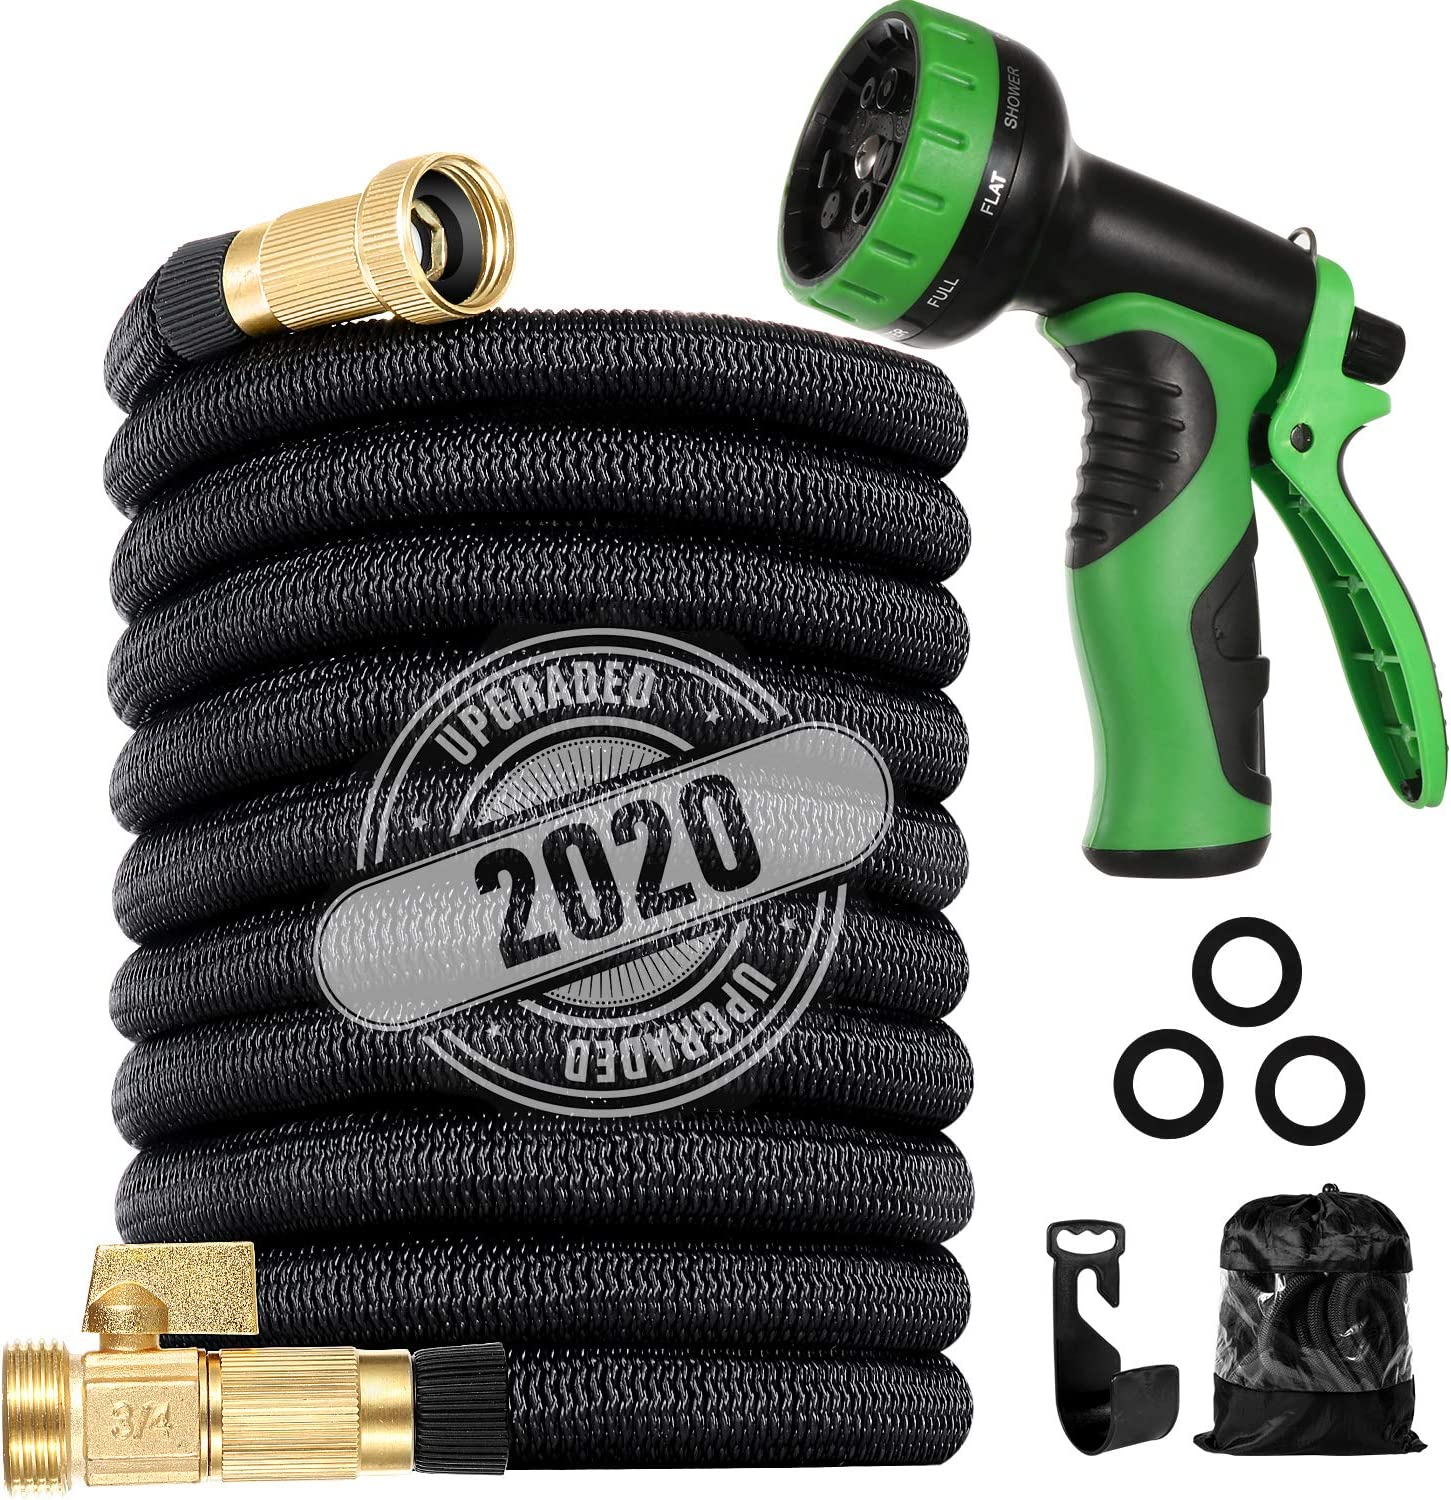 "200 ft Flexible and Expandable Garden Hose -2020 Upgraded Retractable Water Hose- Strongest Triple Latex Core with 3/4"" Solid Brass Fittings ,10 Function Spray Nozzle,Ideal for Watering and Washing"